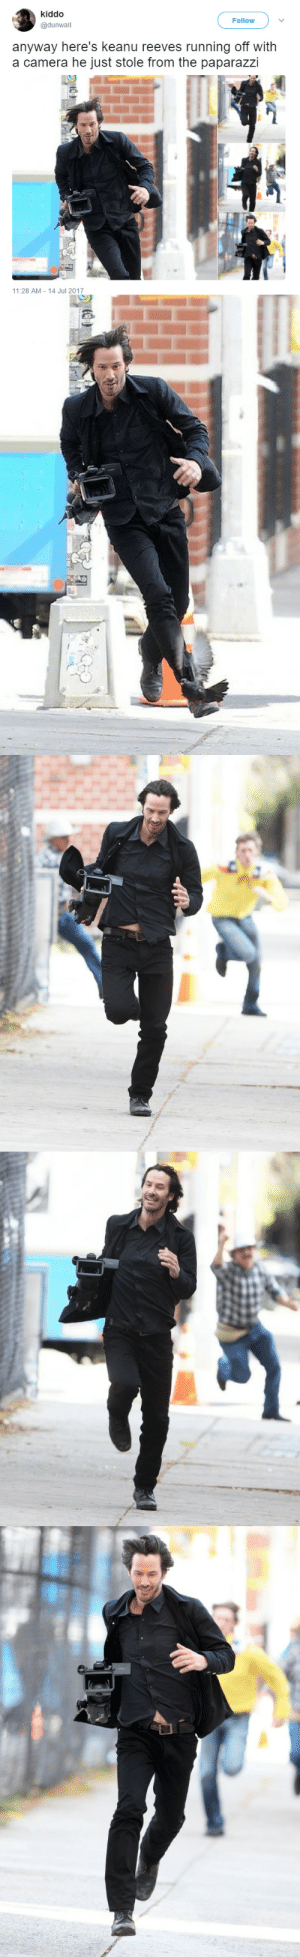 whostolemymonkey:  the-porter-rockwell:   forestwildflower:   thenatsdorf: Keanu Thieves (via mushroombirdornaments)  The people running after him makes it funnier   He looks so happy   The whole post, blessed. : kiddo  @dunwall  Follow  anyway here's keanu reeves running off with  a camera he just stole from the paparazzi  11:28 AM 14 Jul 2017 whostolemymonkey:  the-porter-rockwell:   forestwildflower:   thenatsdorf: Keanu Thieves (via mushroombirdornaments)  The people running after him makes it funnier   He looks so happy   The whole post, blessed.